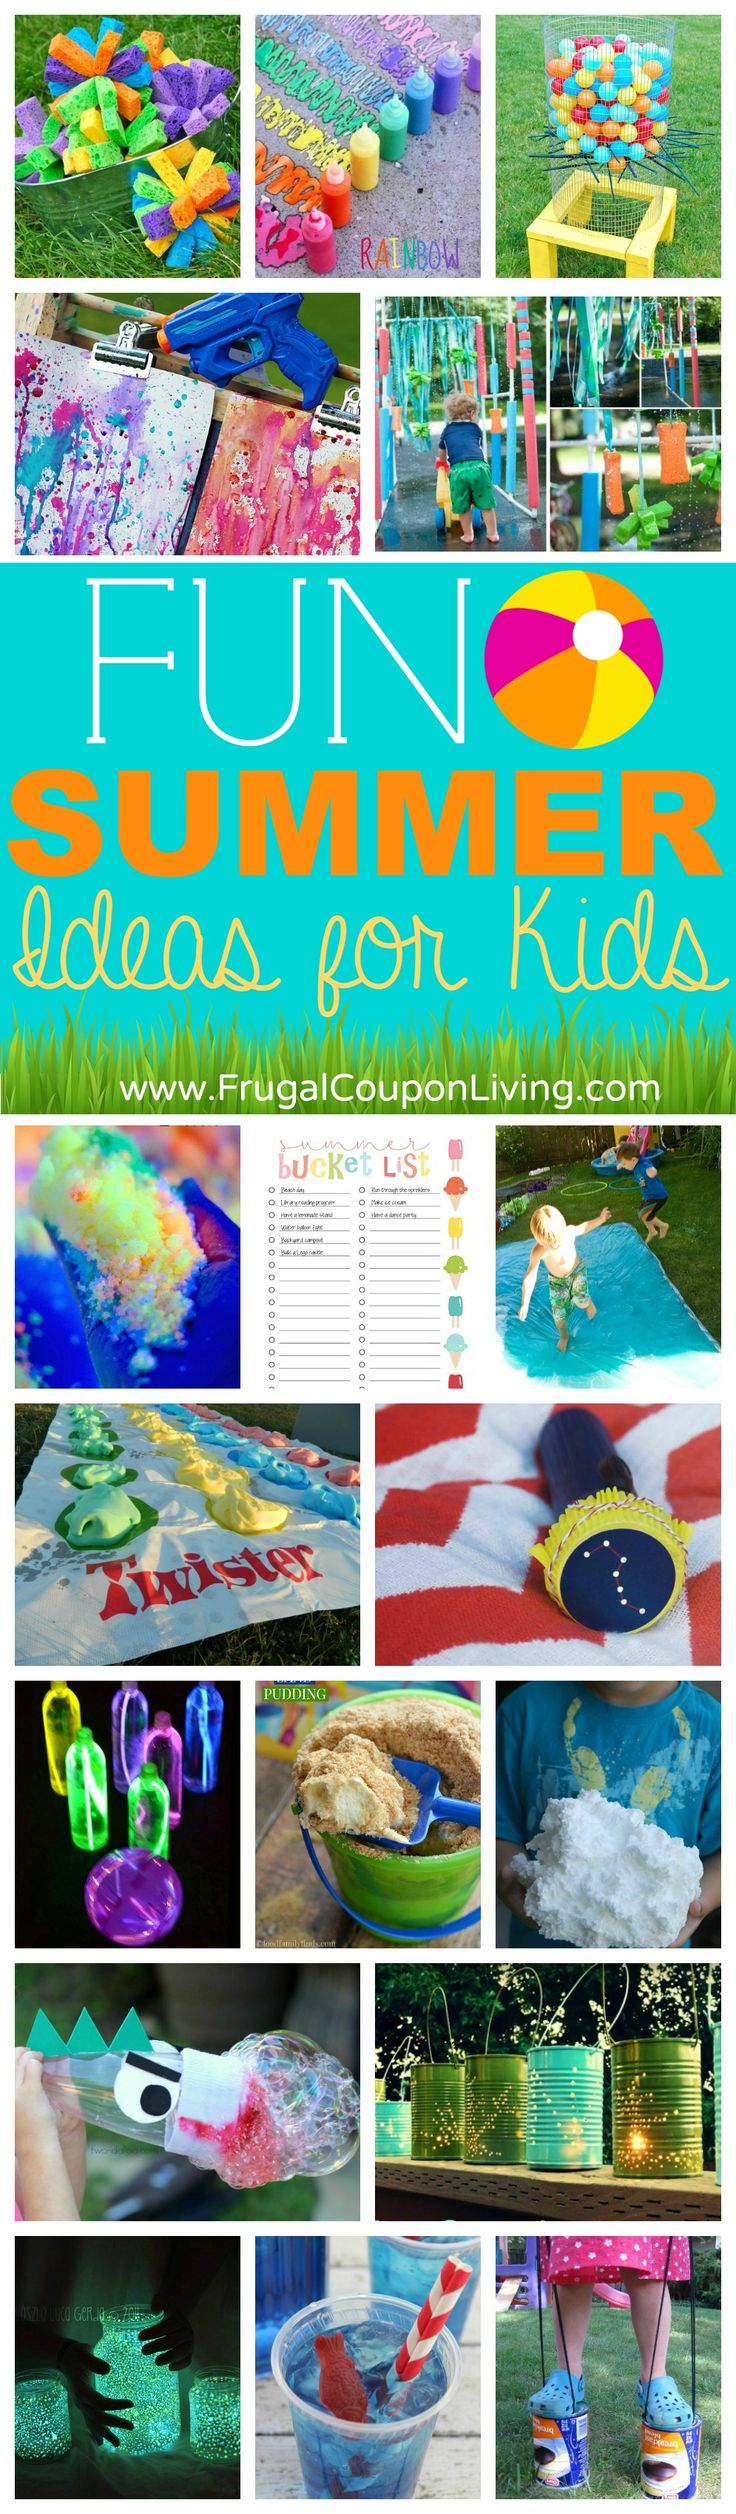 DIY Summer Activities for the Kids - we love these crafts, backyard ideas, and summer adventures for the kids on Frugal Coupon Living. Round-Up from some of the best bloggers around!